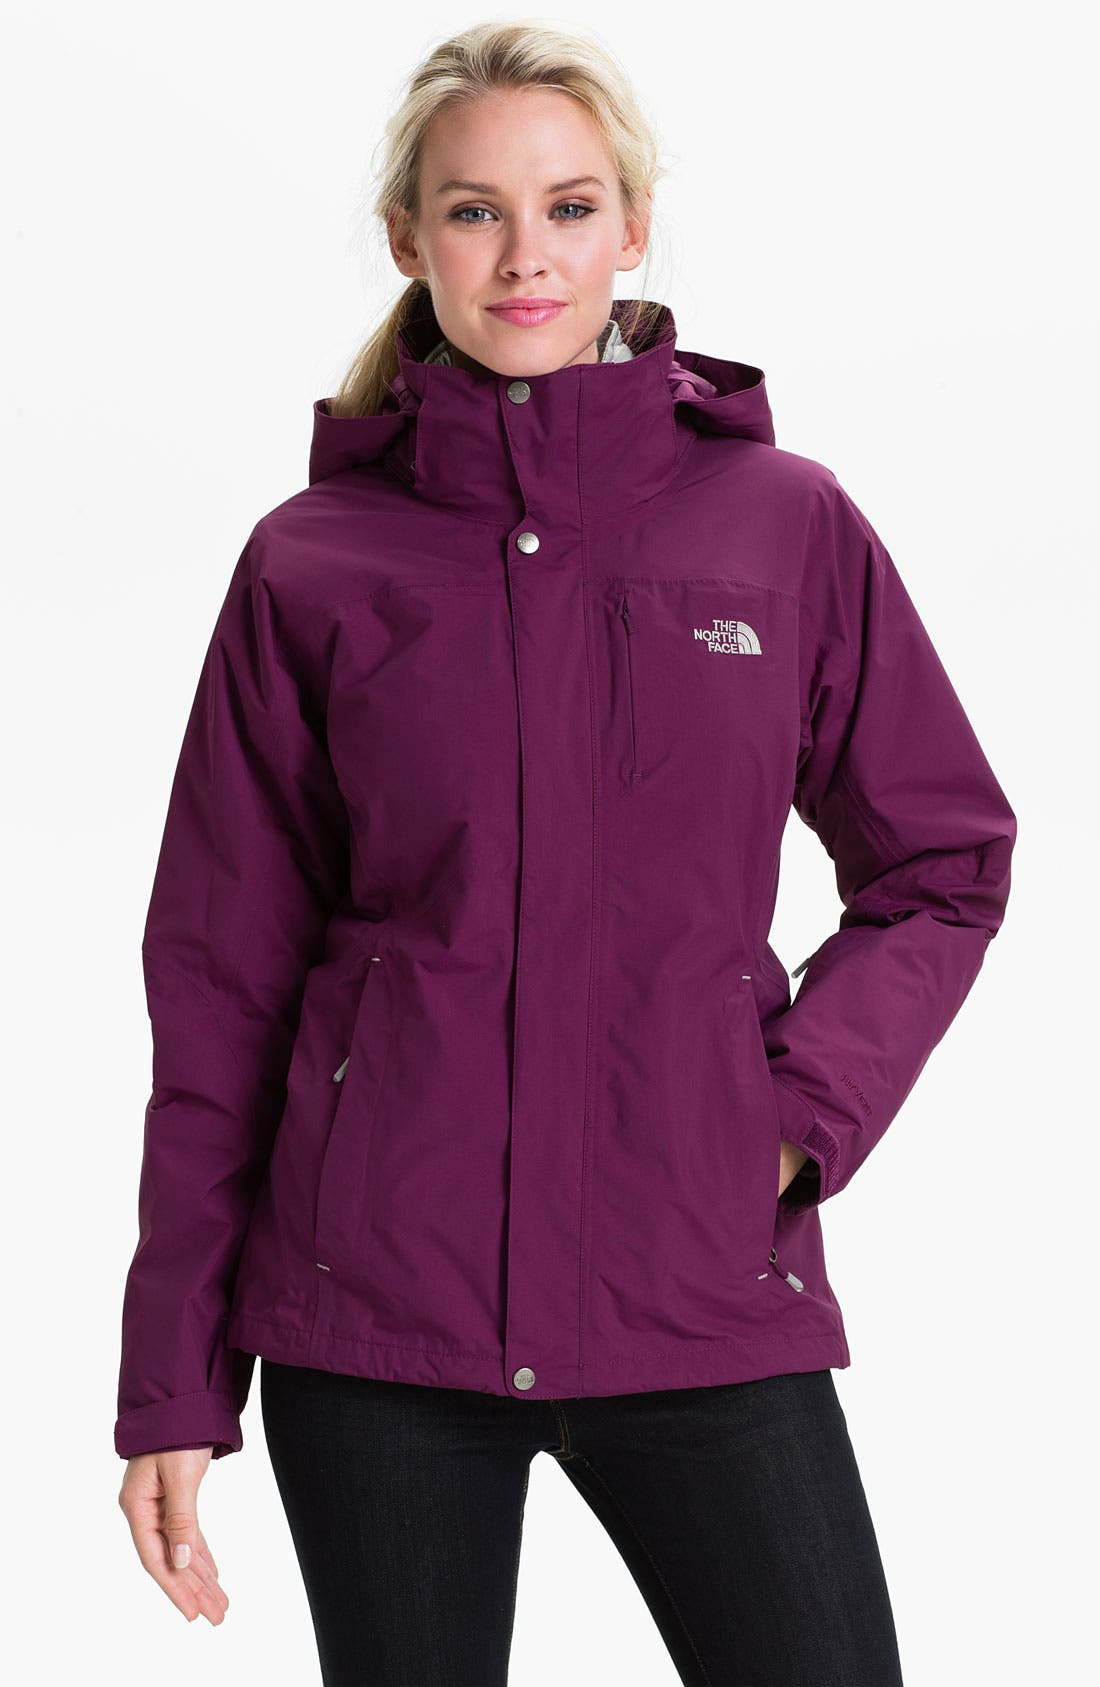 Alternate Image 1 Selected - The North Face 'Deuces' TriClimate® 3-in-1 Jacket